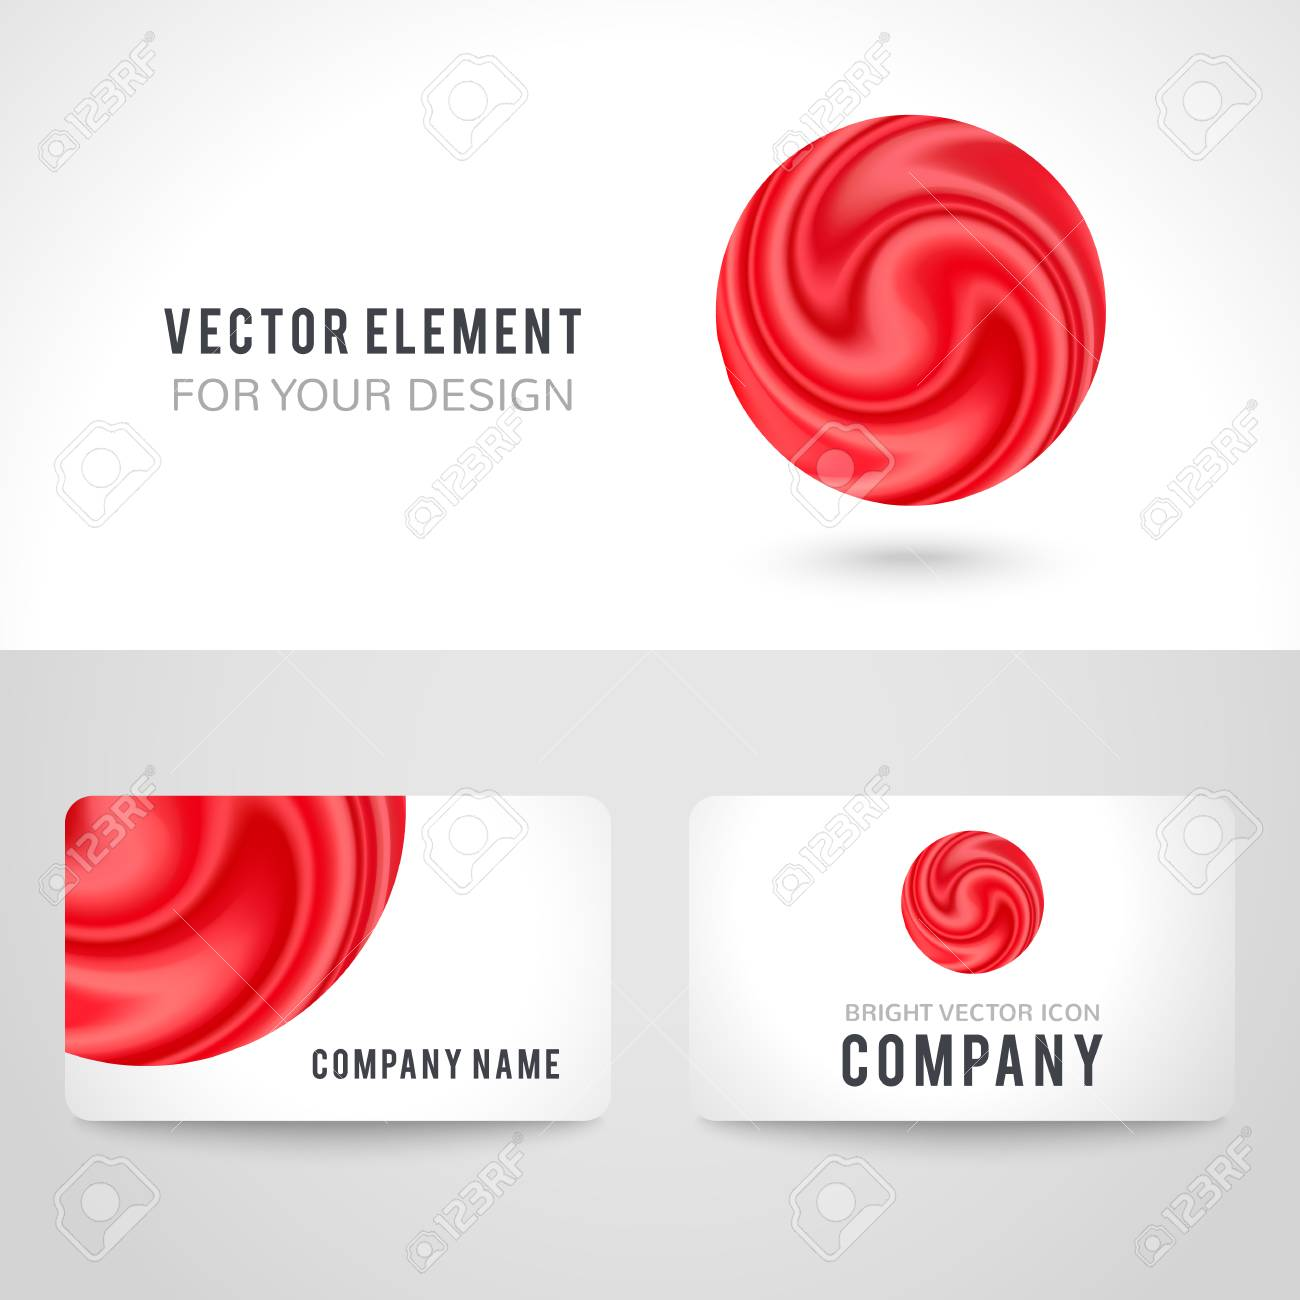 Business card template set abstract red circle on white background business card template set abstract red circle on white background vector illustration for modern friedricerecipe Choice Image